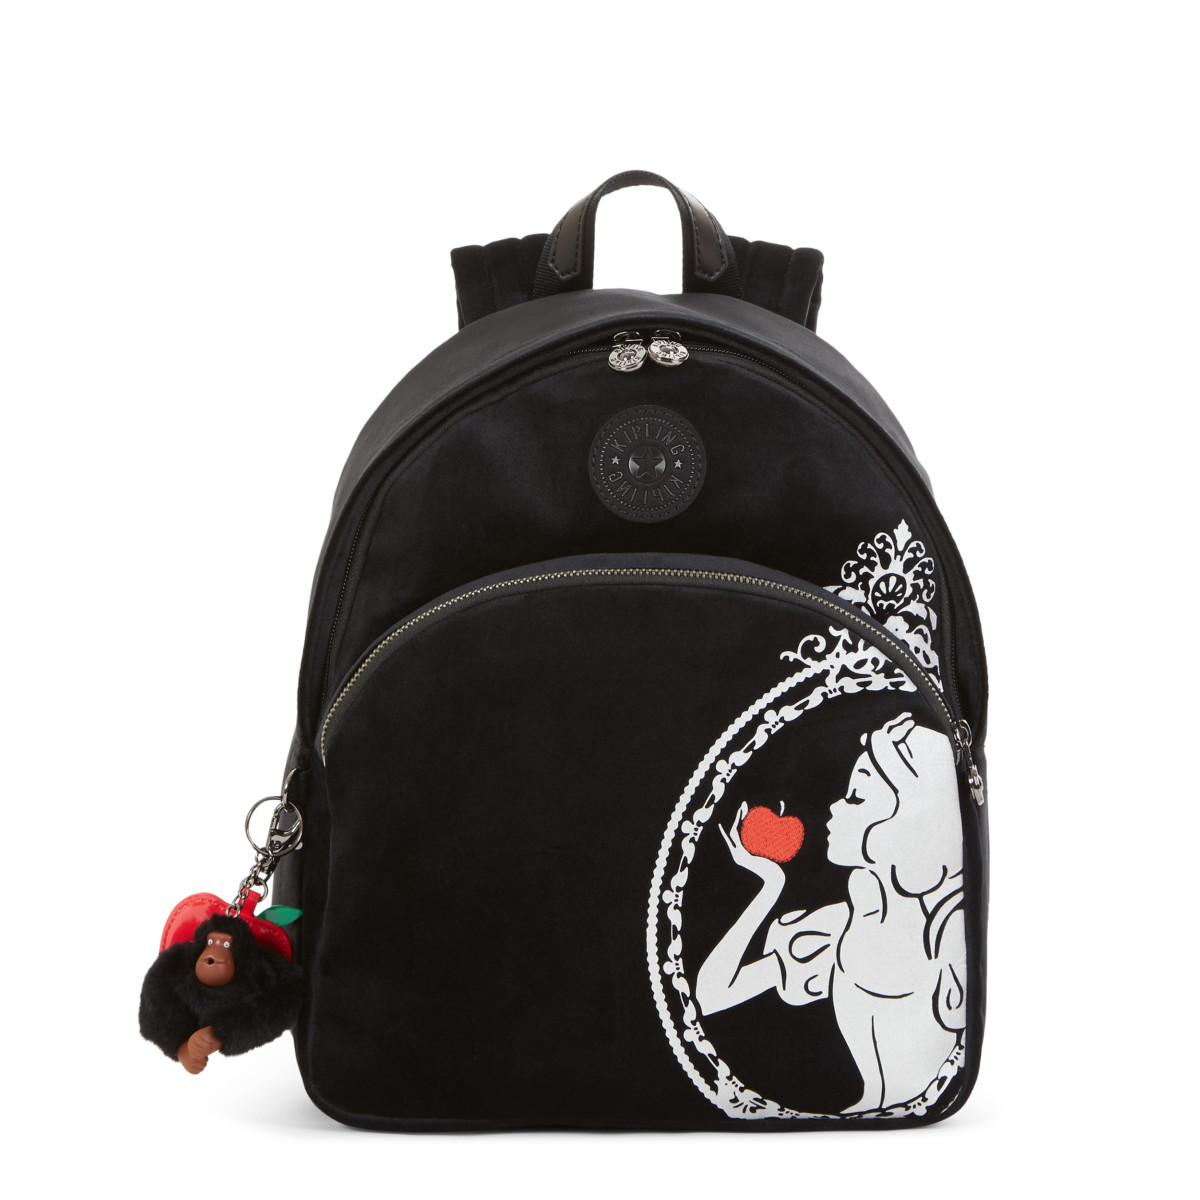 Kipling and Disney Snow White Collection! 6